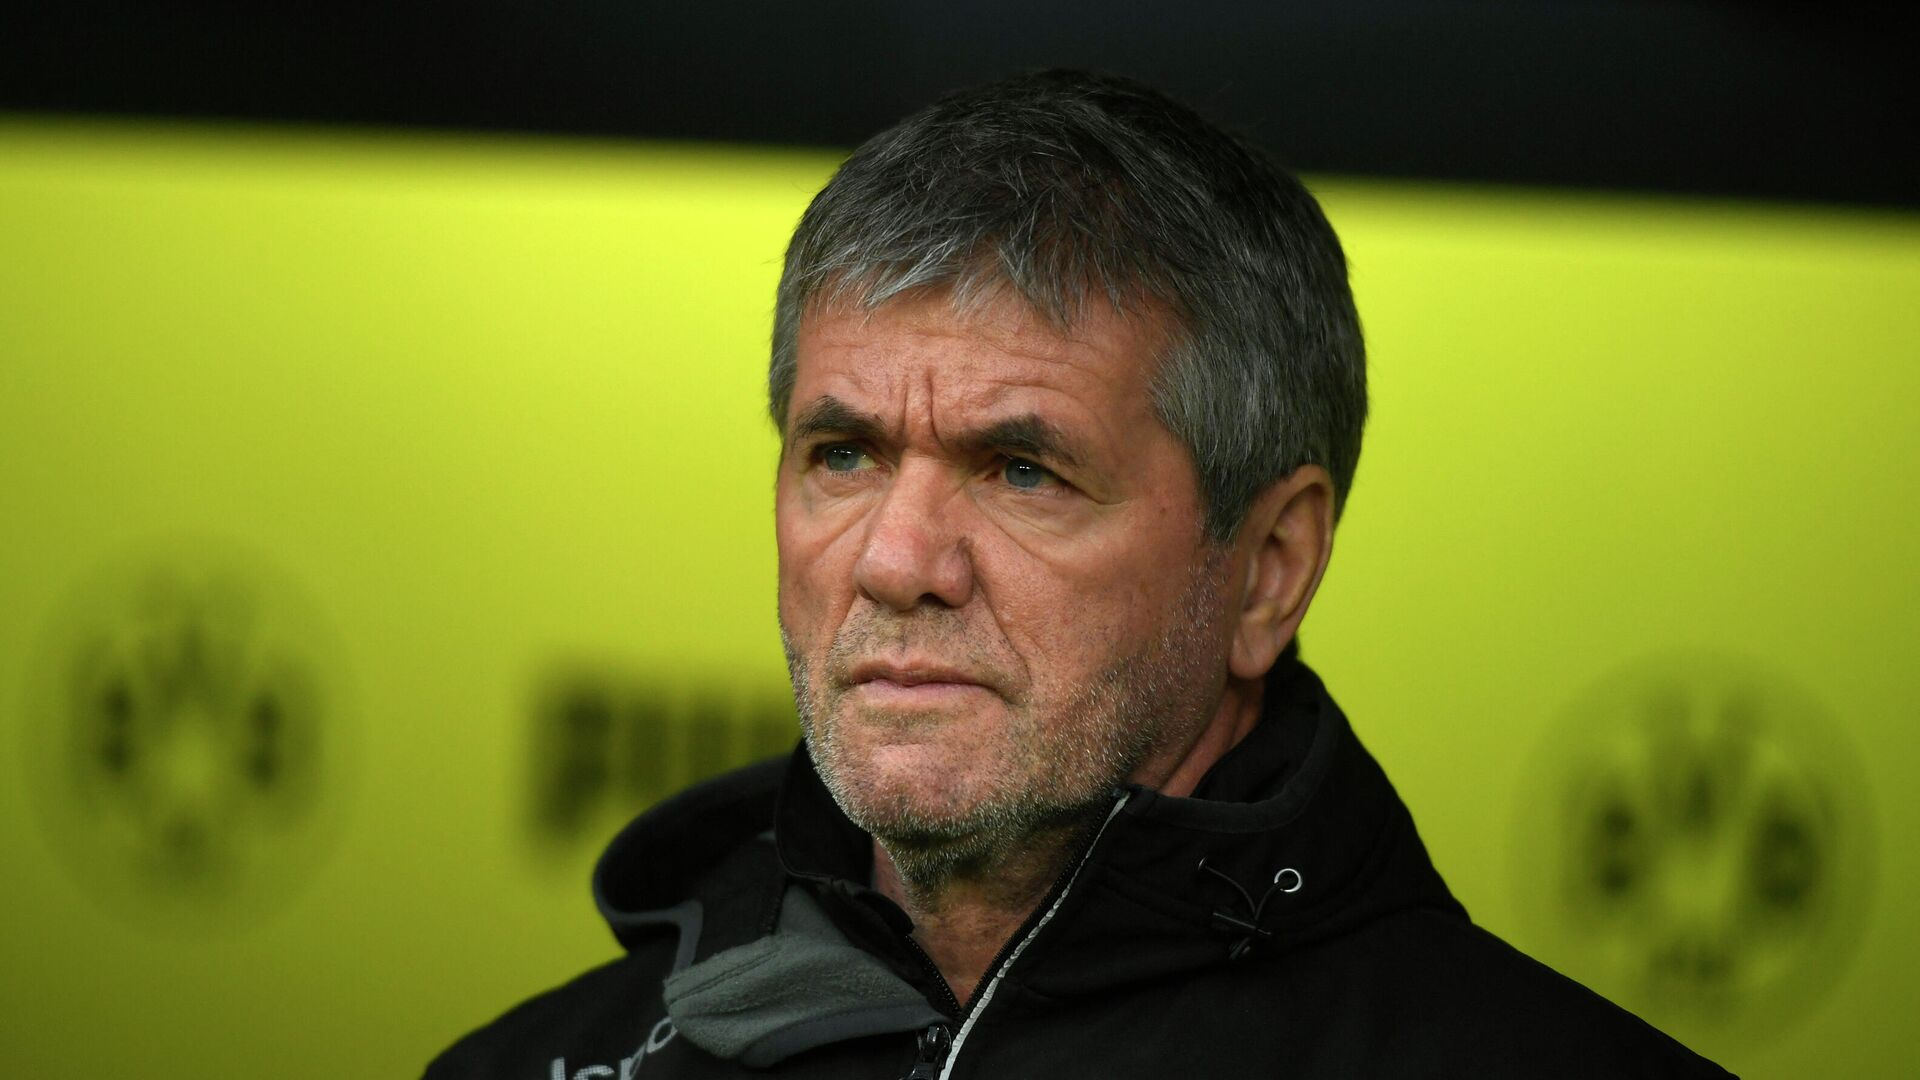 Fortuna Duesseldorf's German head coach Friedhelm Funkel looks on during the German first division Bundesliga football match Borussia Dortmund v Fortuna Duesseldorf in Dortmund, western Germany on December 7, 2019. (Photo by INA FASSBENDER / AFP) / DFL REGULATIONS PROHIBIT ANY USE OF PHOTOGRAPHS AS IMAGE SEQUENCES AND/OR QUASI-VIDEO - РИА Новости, 1920, 12.04.2021